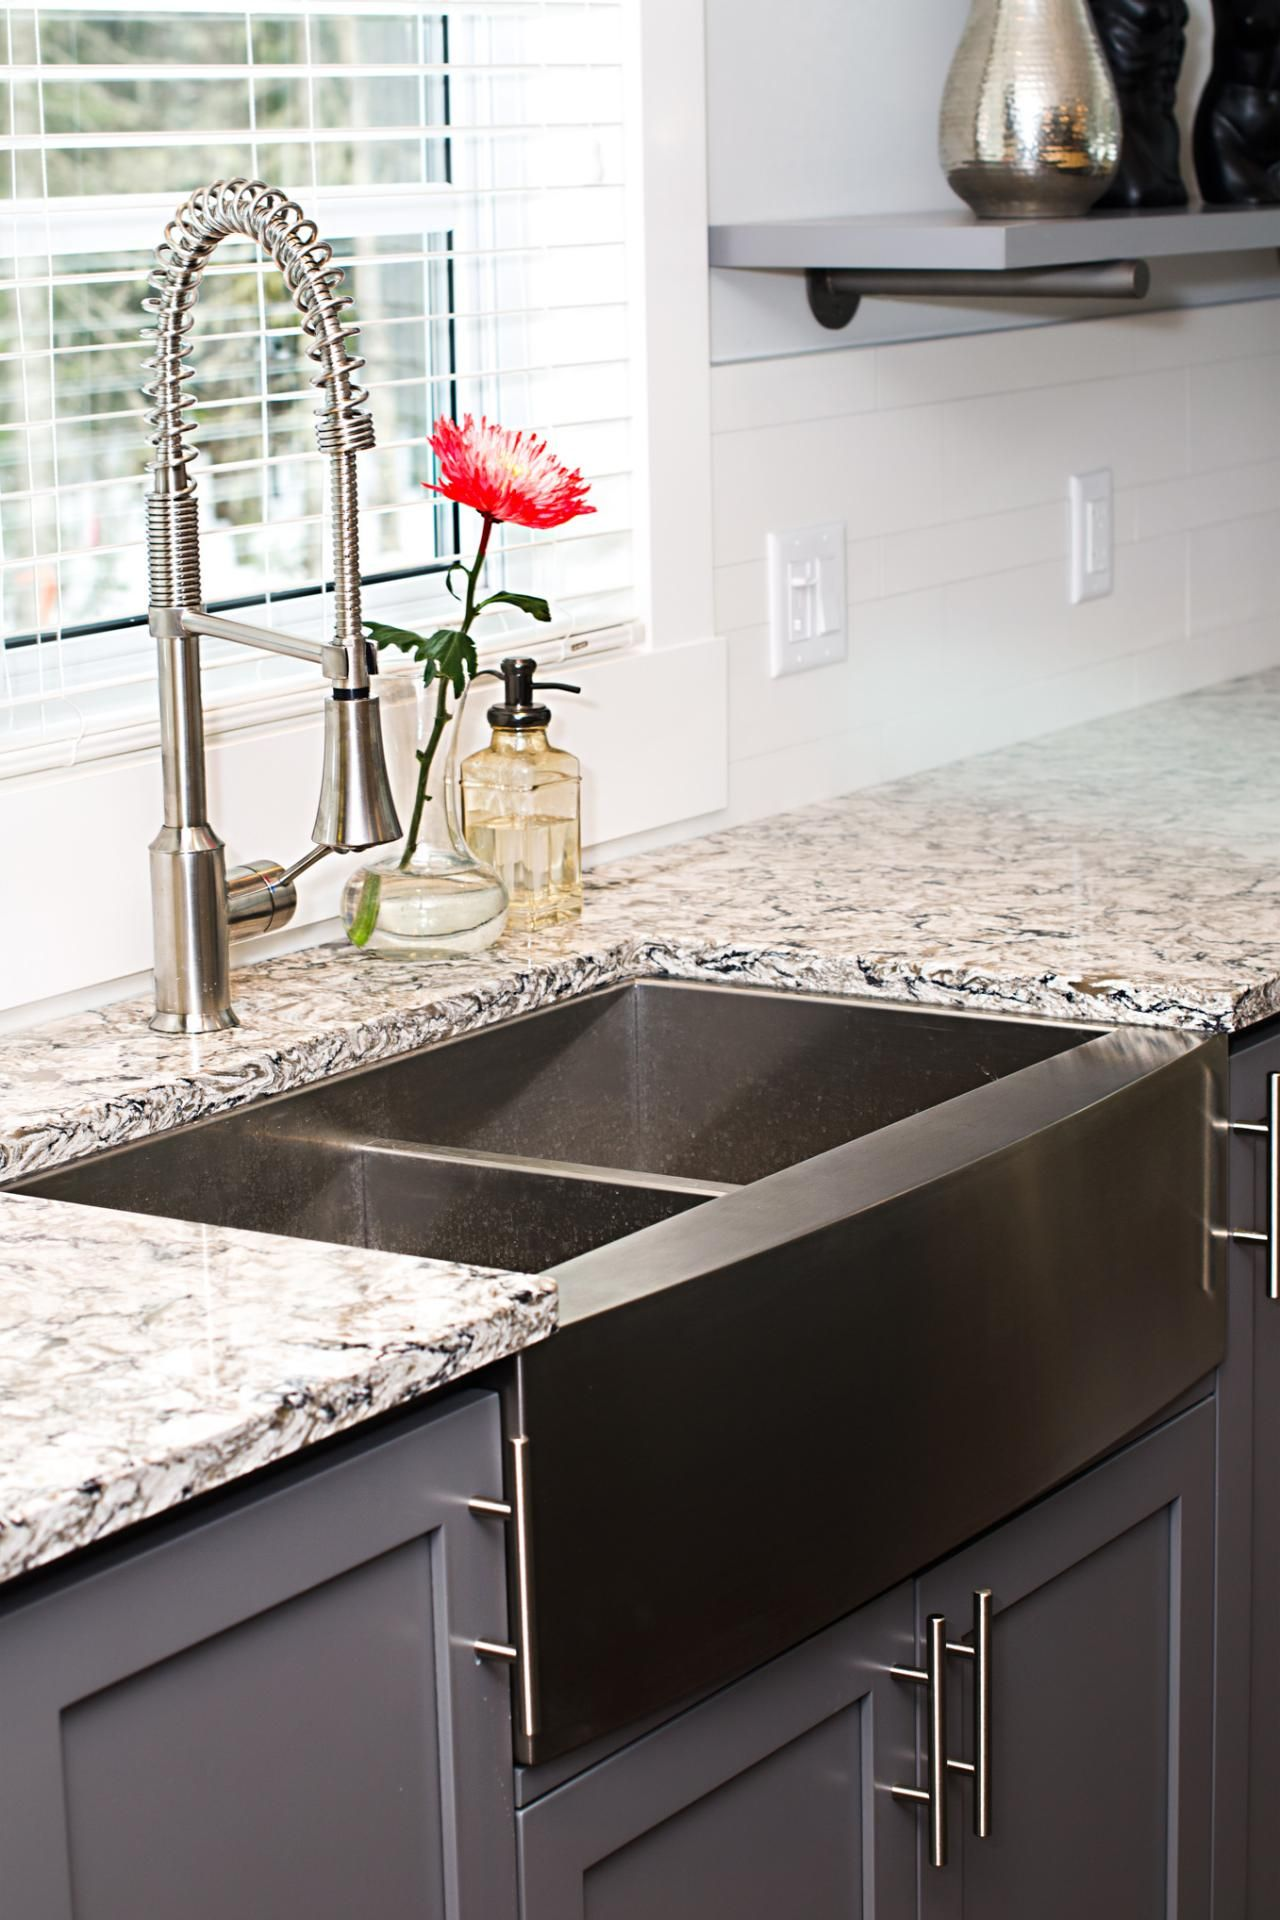 Black Stainless Steel Sink